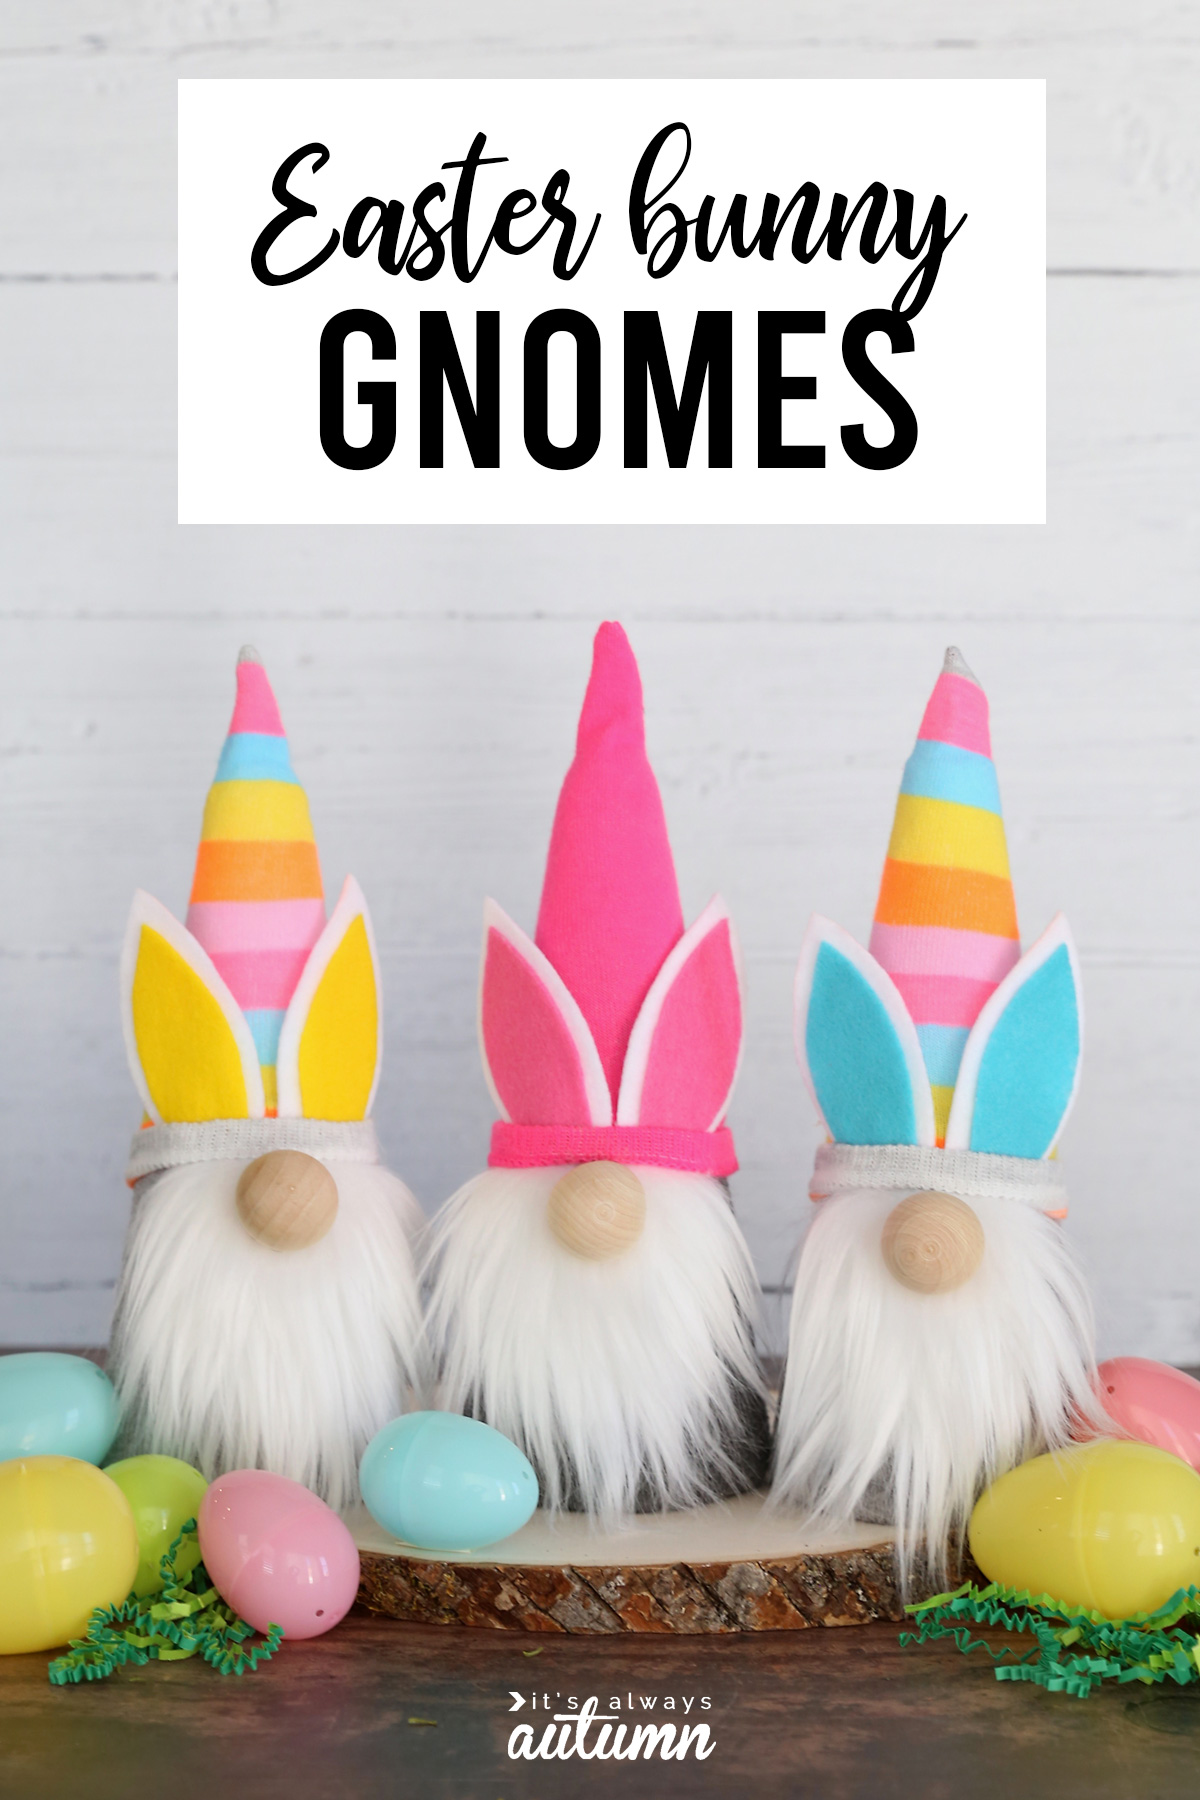 DIY sock gnomes with Easter bunny ears and plastic Easter eggs with words: Easter bunny gnomes